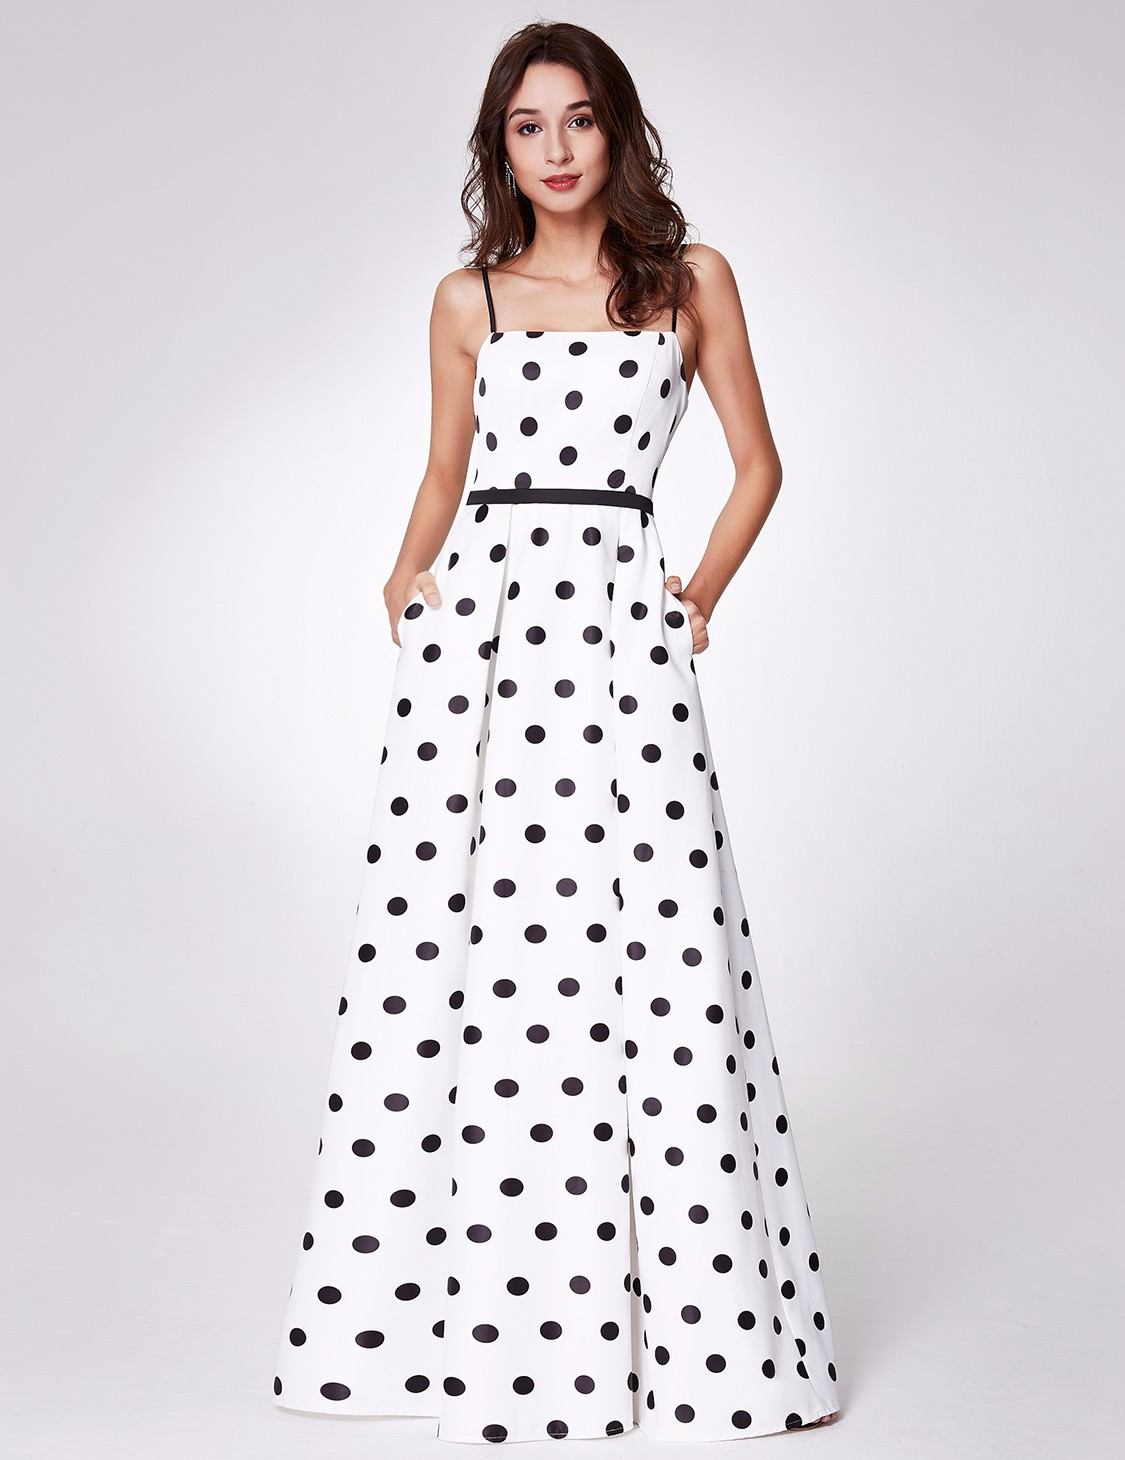 a6bd0e98374 Details about Ever-Pretty Long Women Prom Spaghetti Strap Polka Dot  Bridesmaid Maxi Dress 7214